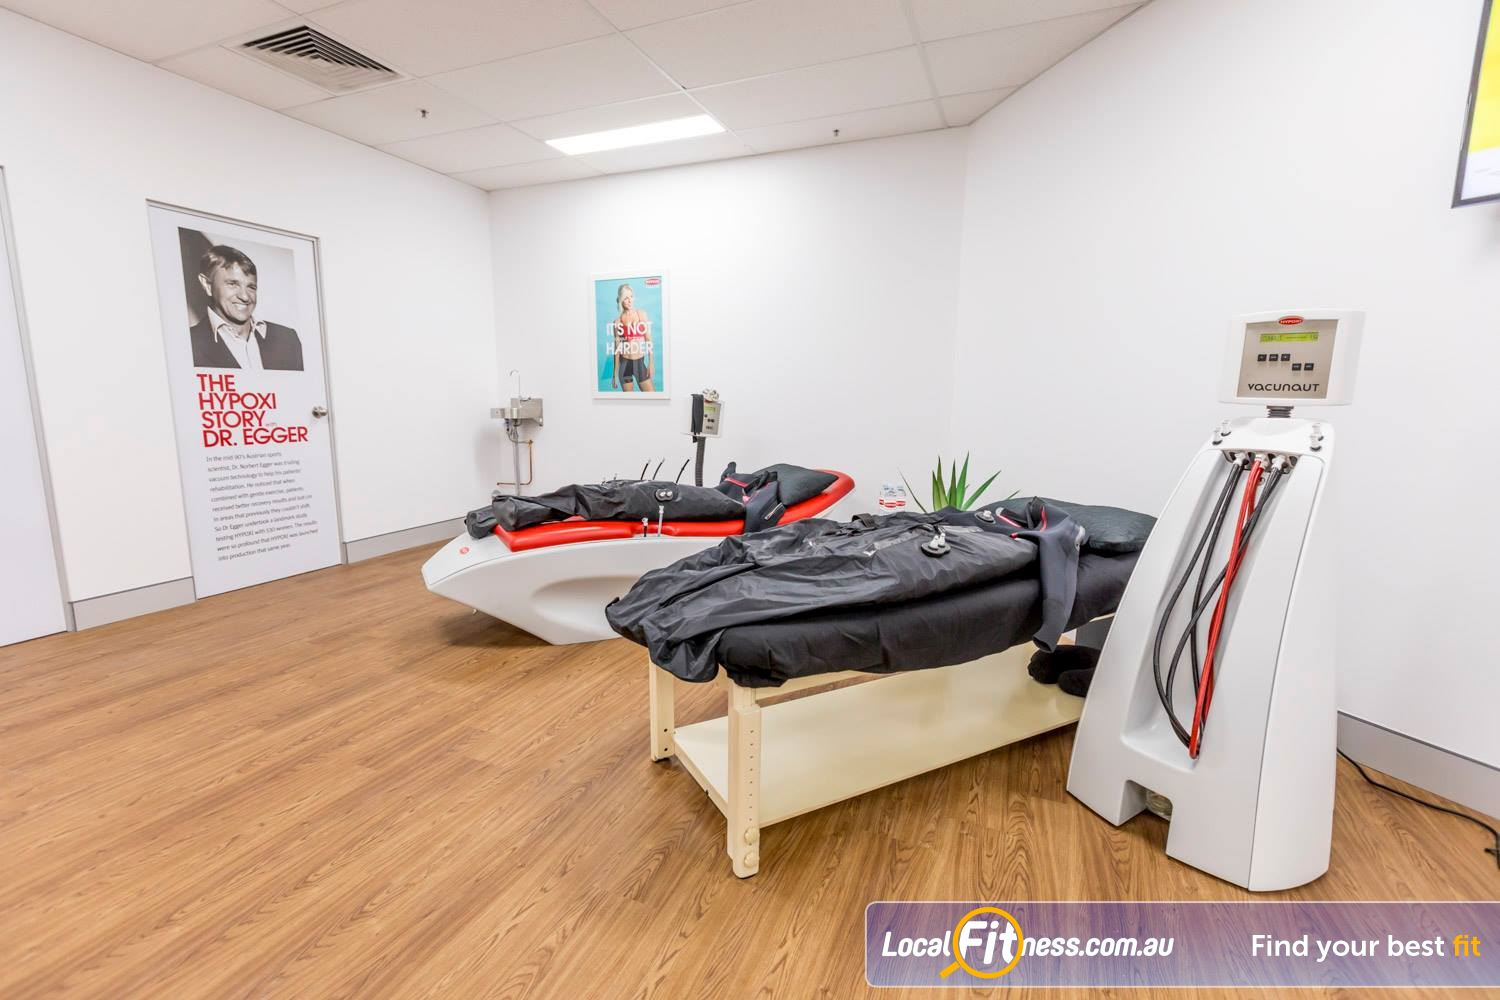 HYPOXI Weight Loss Near Greenwood Low impact exercise on the treadmill while the vacuum machines target fat loss.